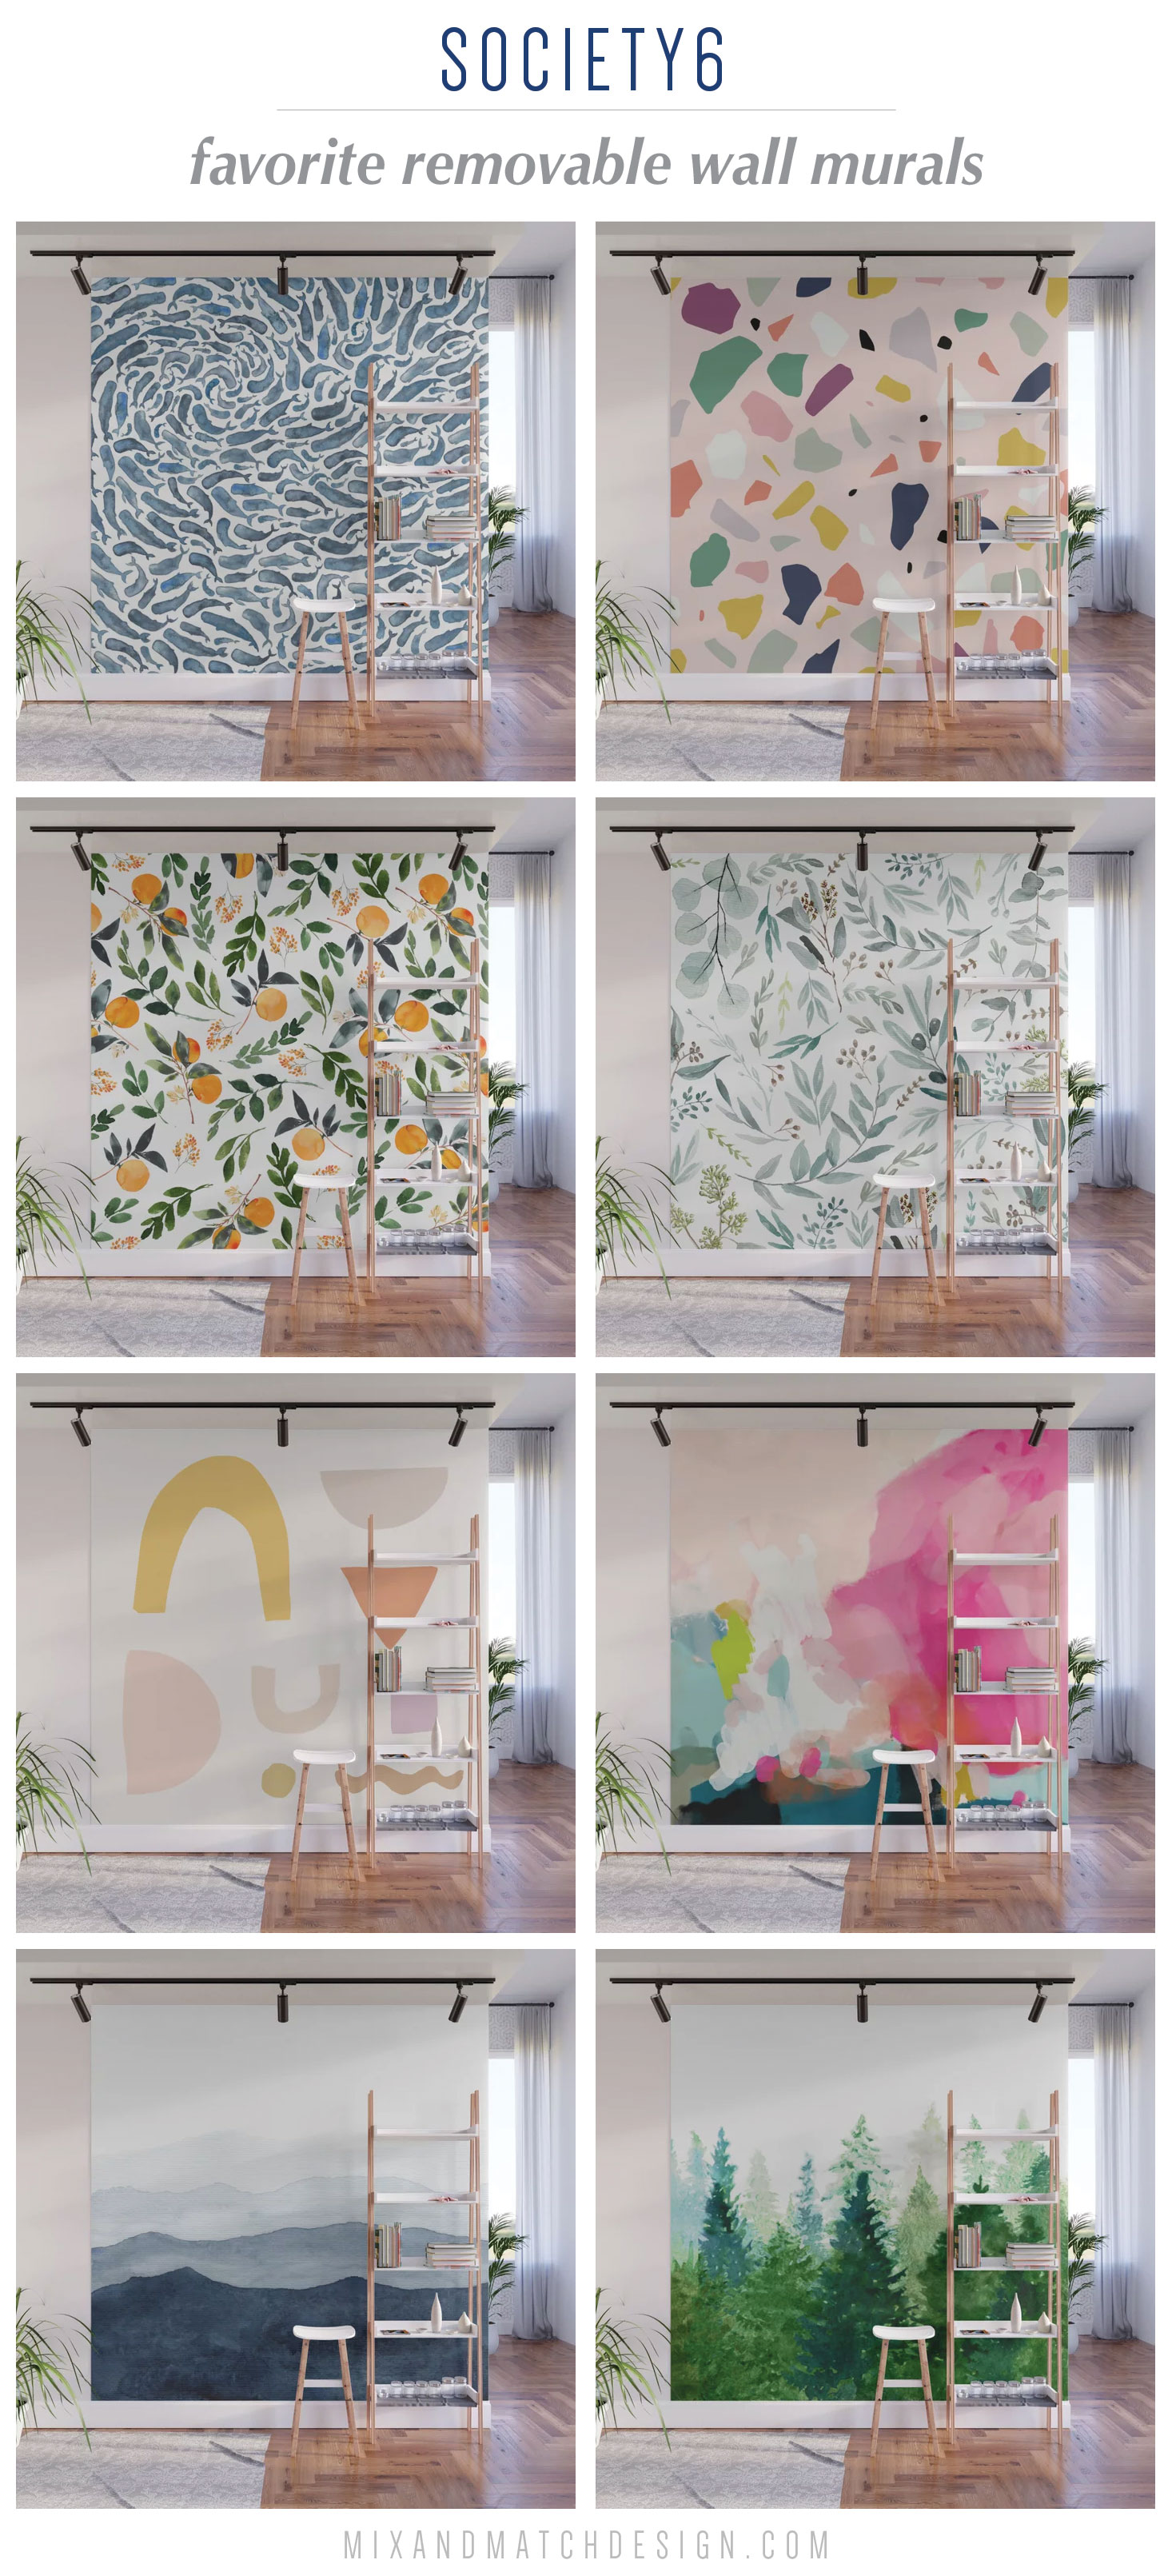 What Caught My Eye Removable Wallpaper Murals From